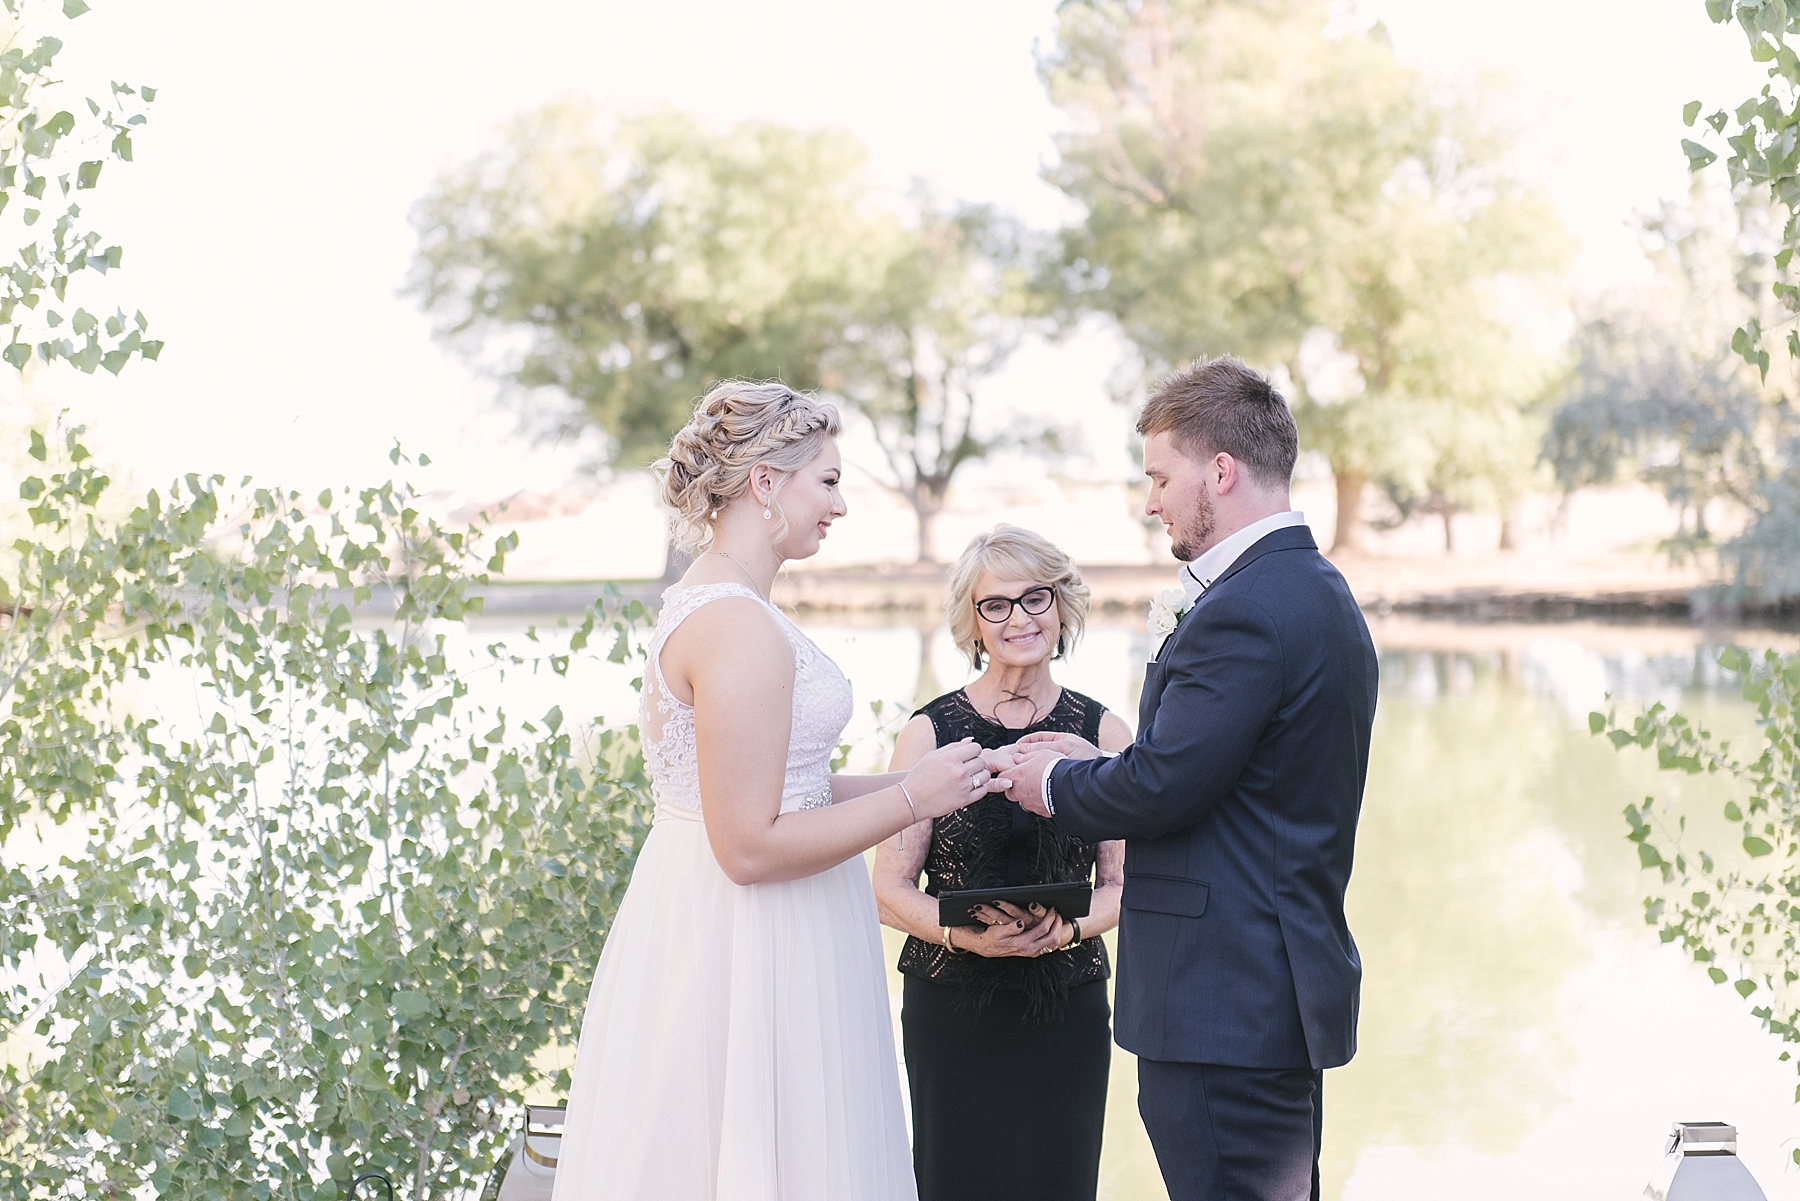 desert_las_vegas_elopement_wedding-08.jpg